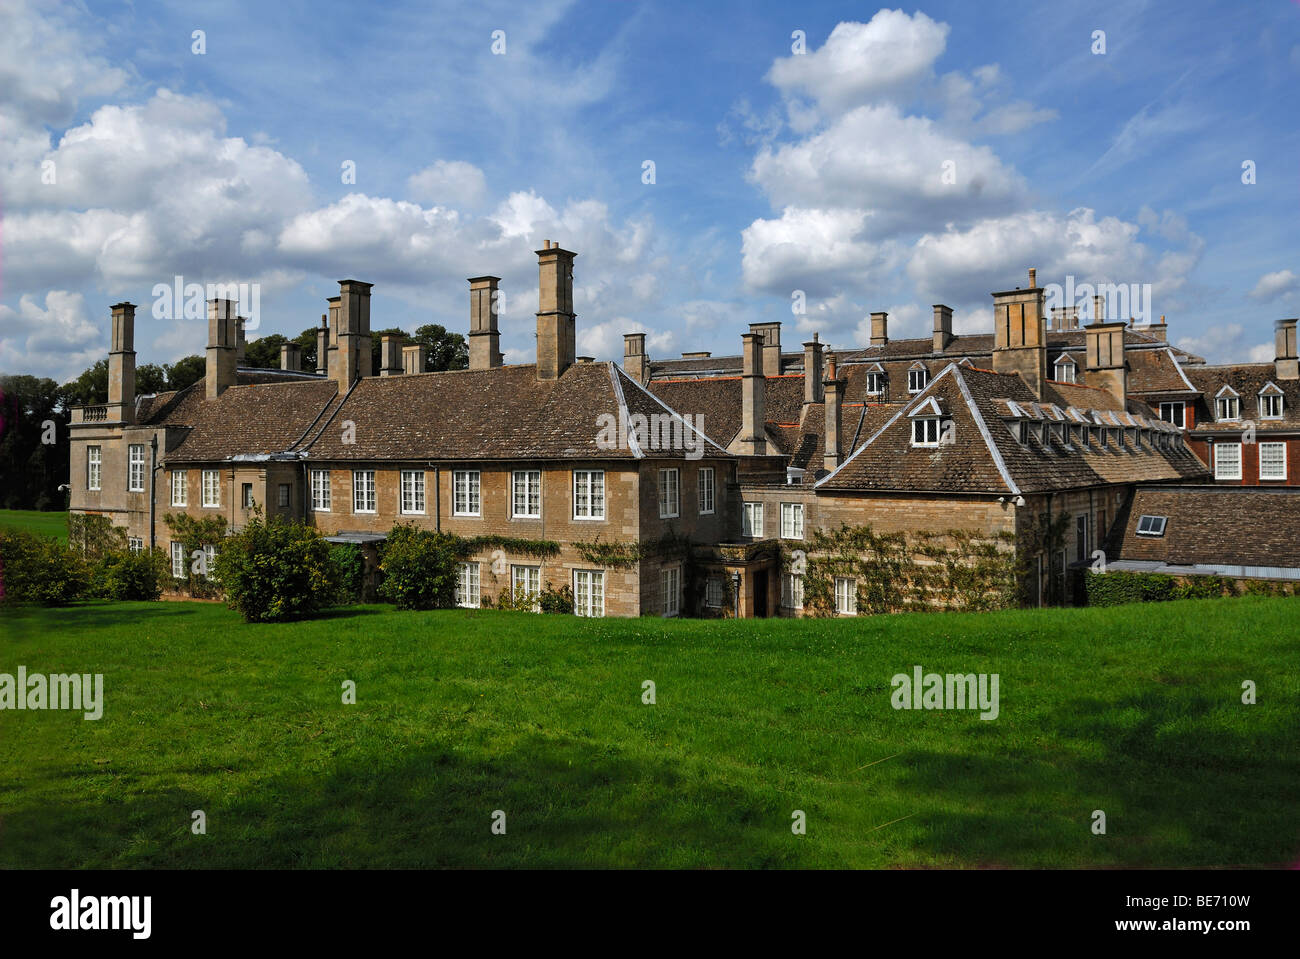 kettering stock photos & kettering stock images - alamy